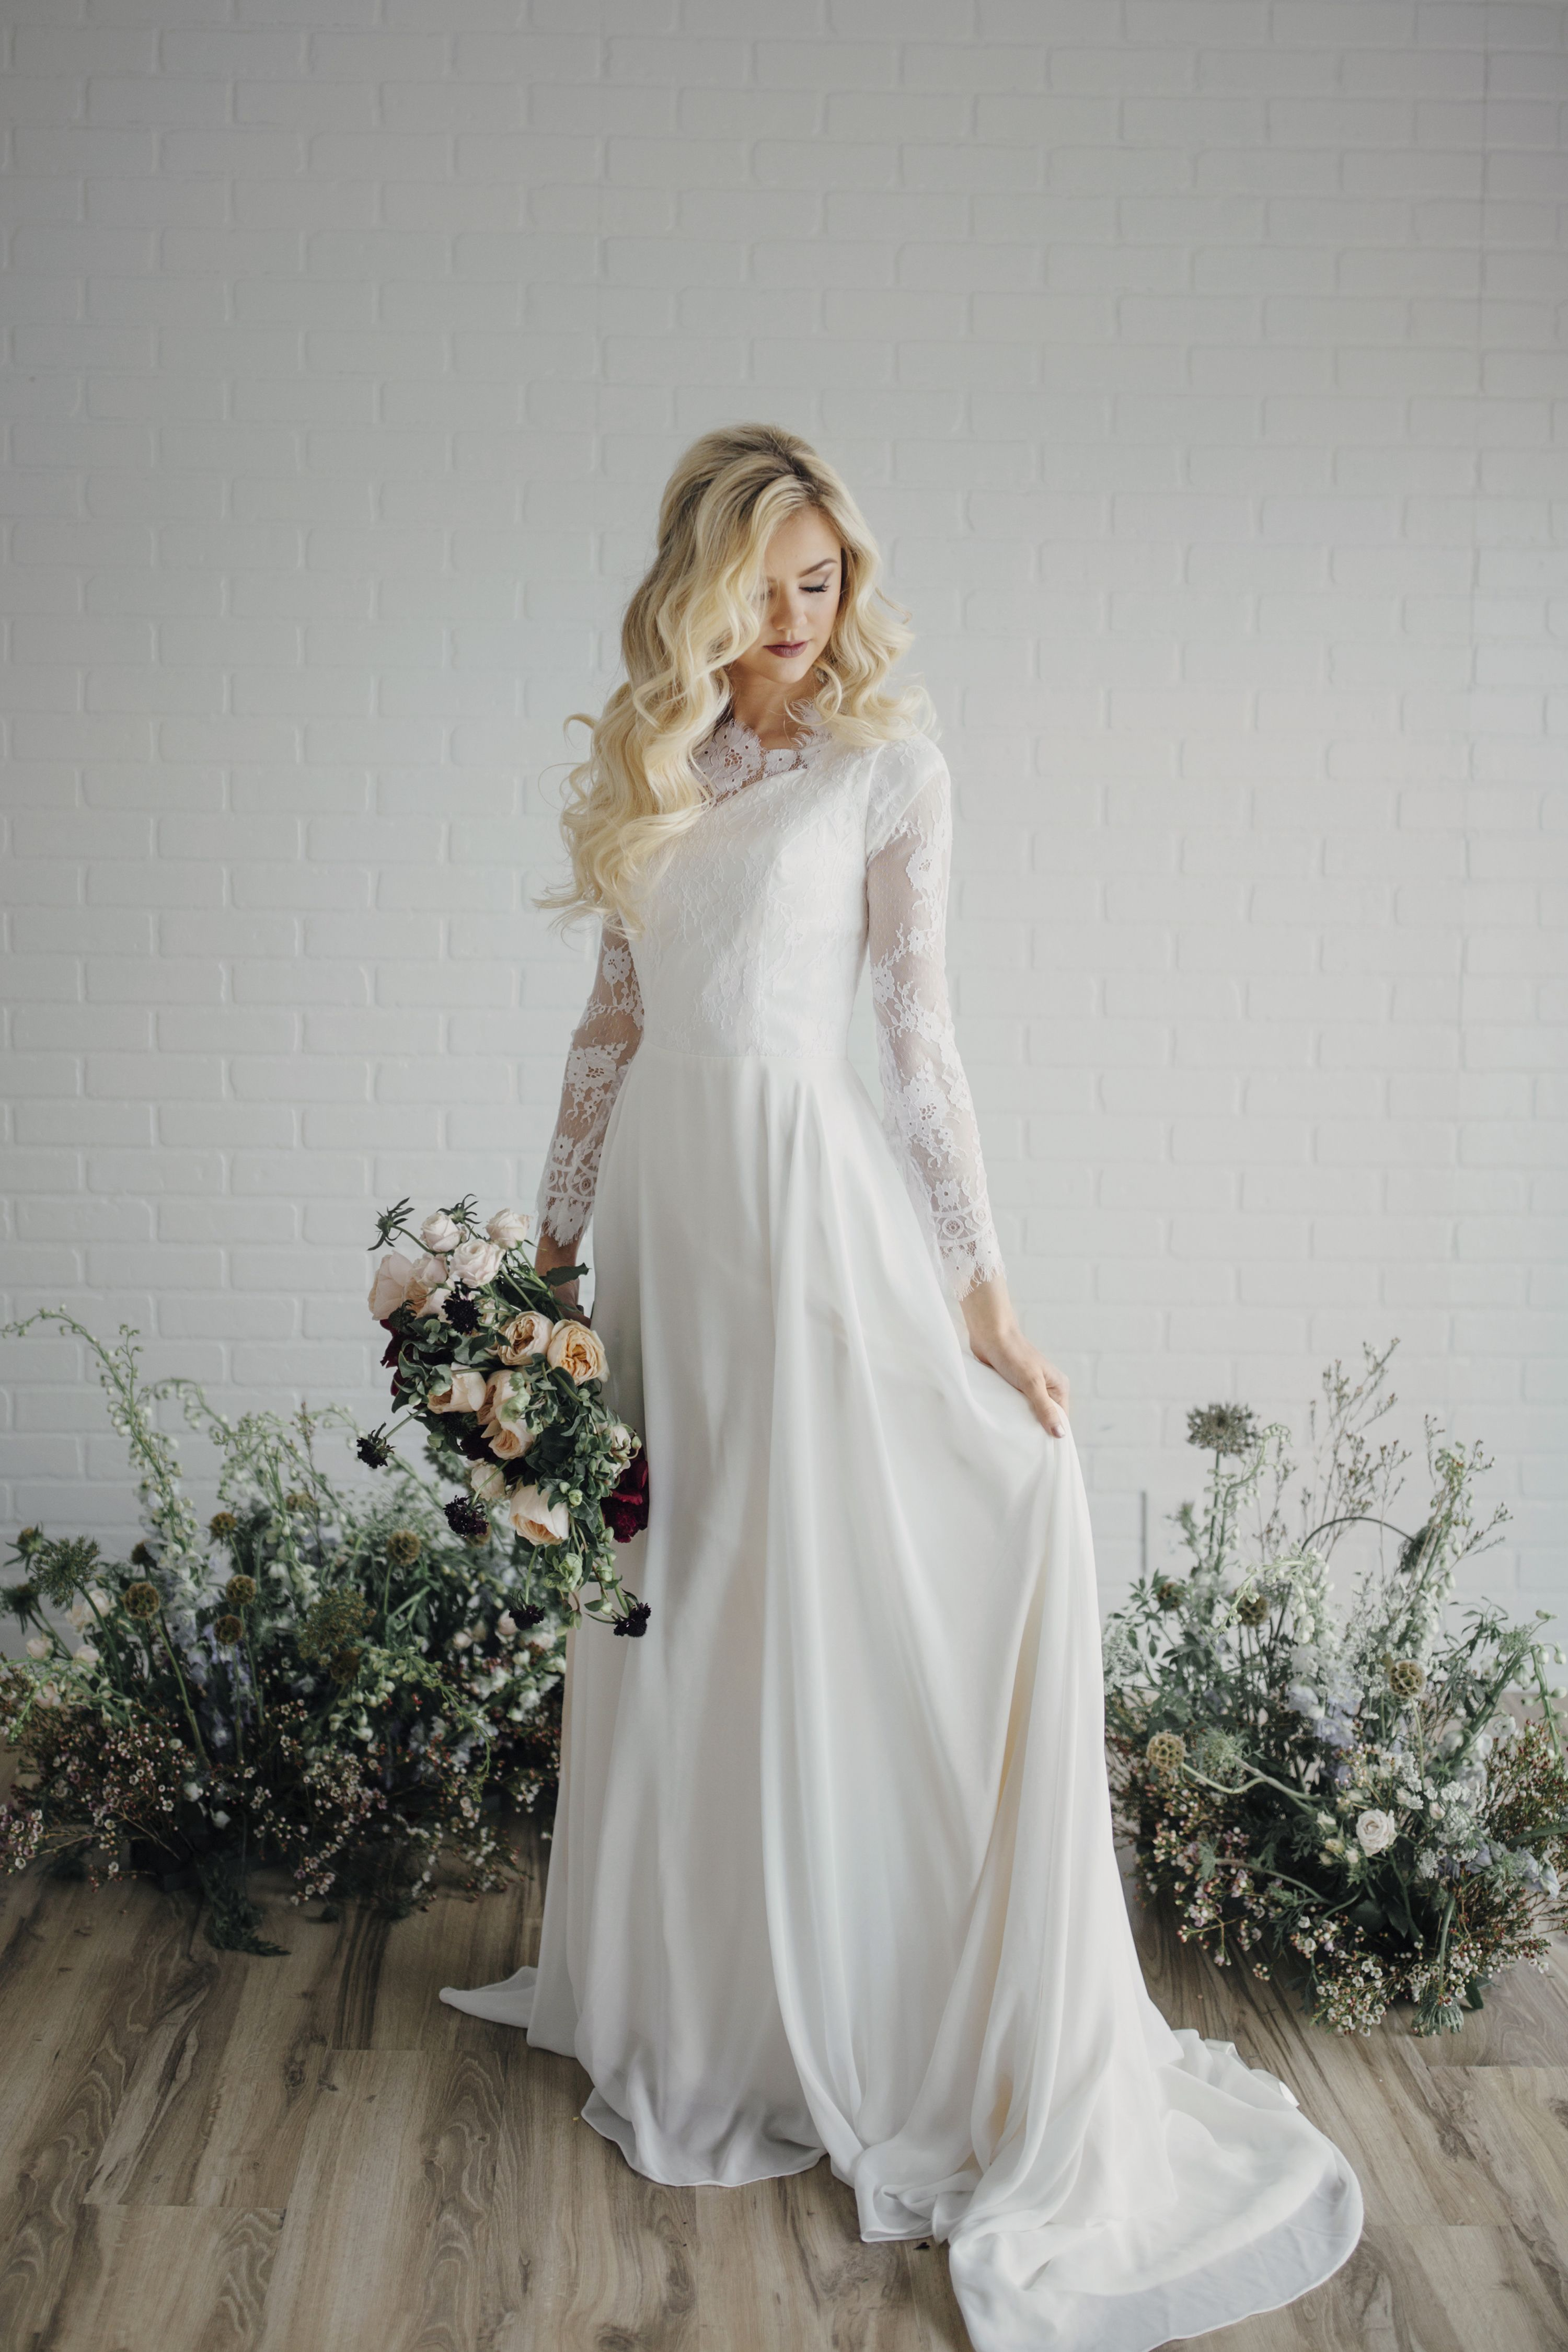 Willow gown by Elizabeth Cooper Design | Photo by ...